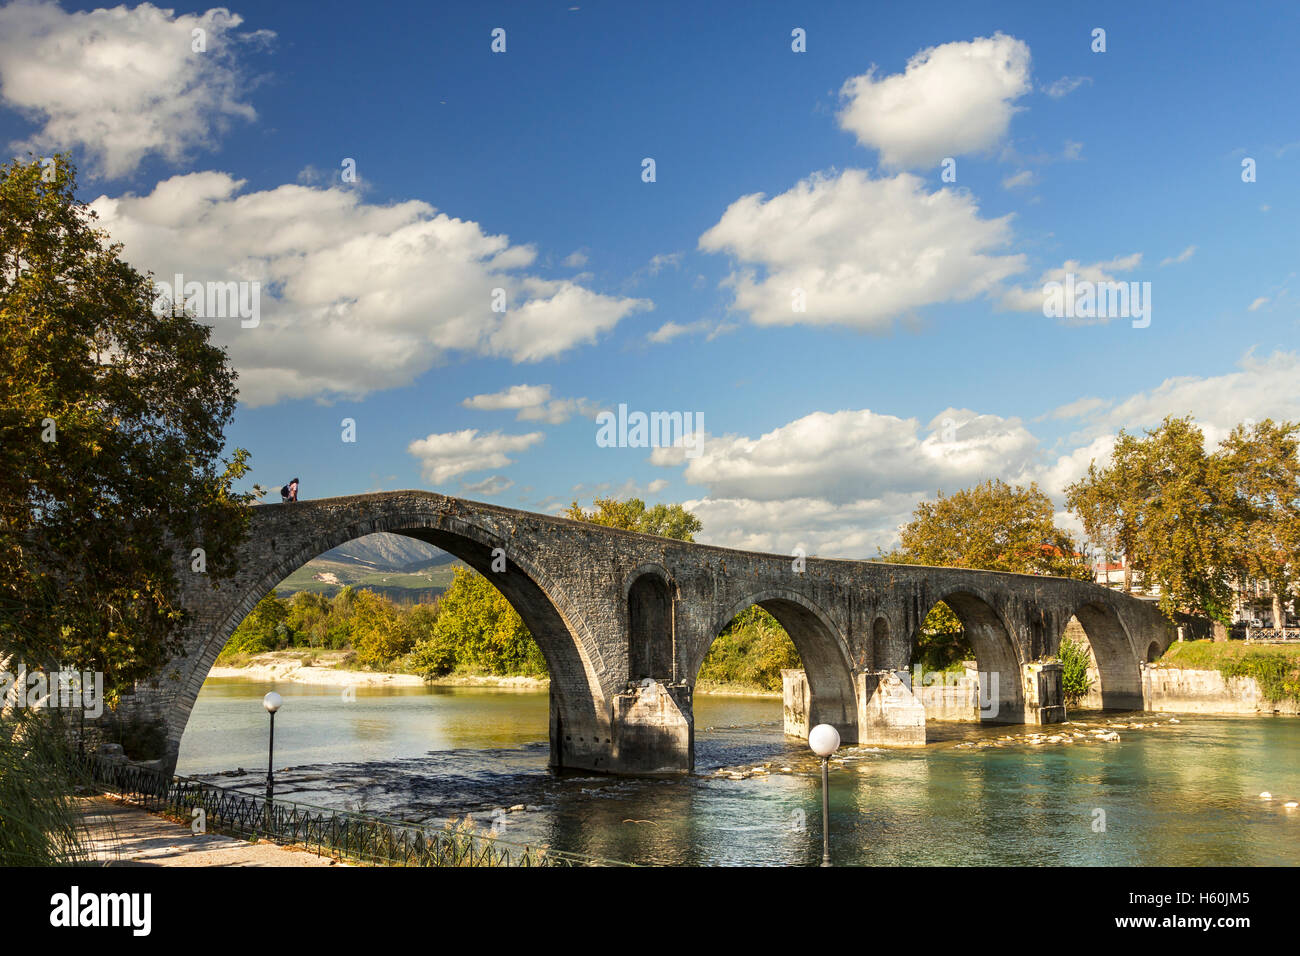 The legendary stone bridge of Arta, the most historic bridge in Greece. - Stock Image